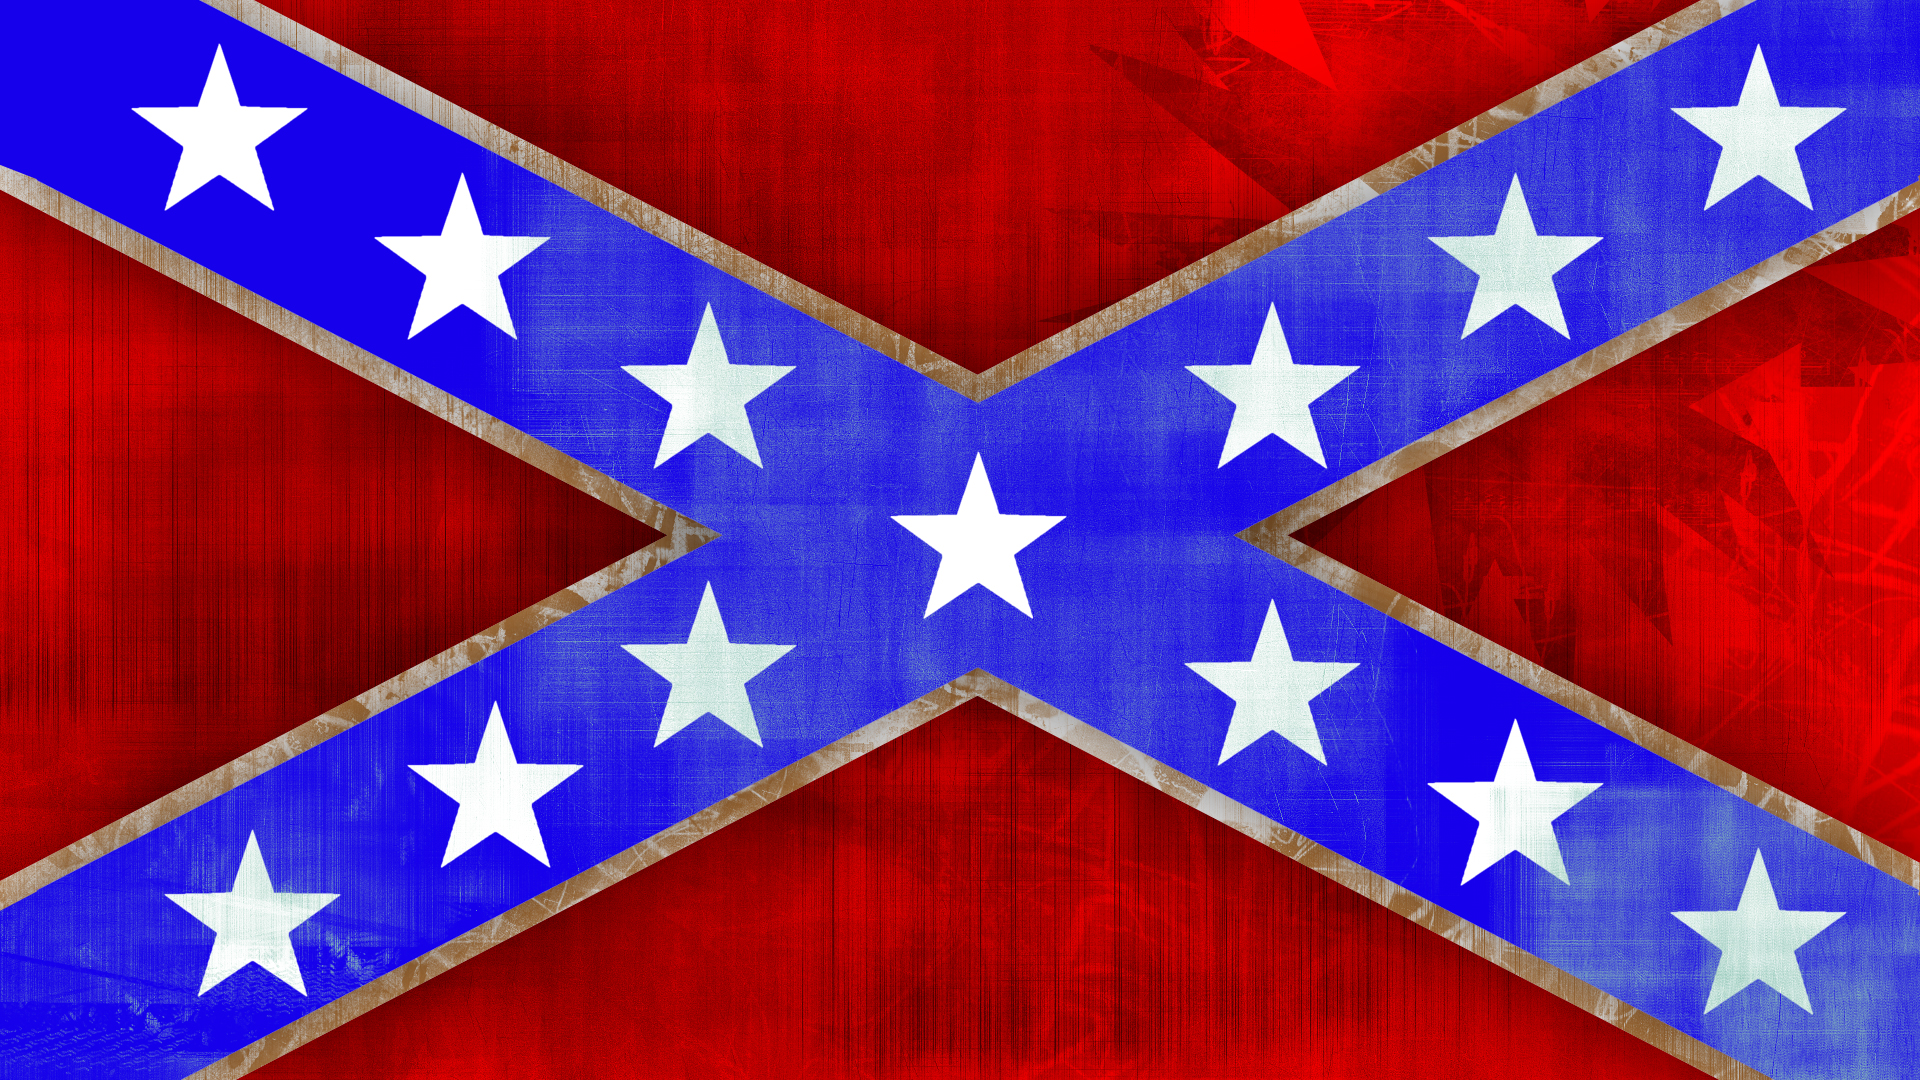 Cool Confederate Flag Wallpapers Images Pictures   Becuo 1920x1080